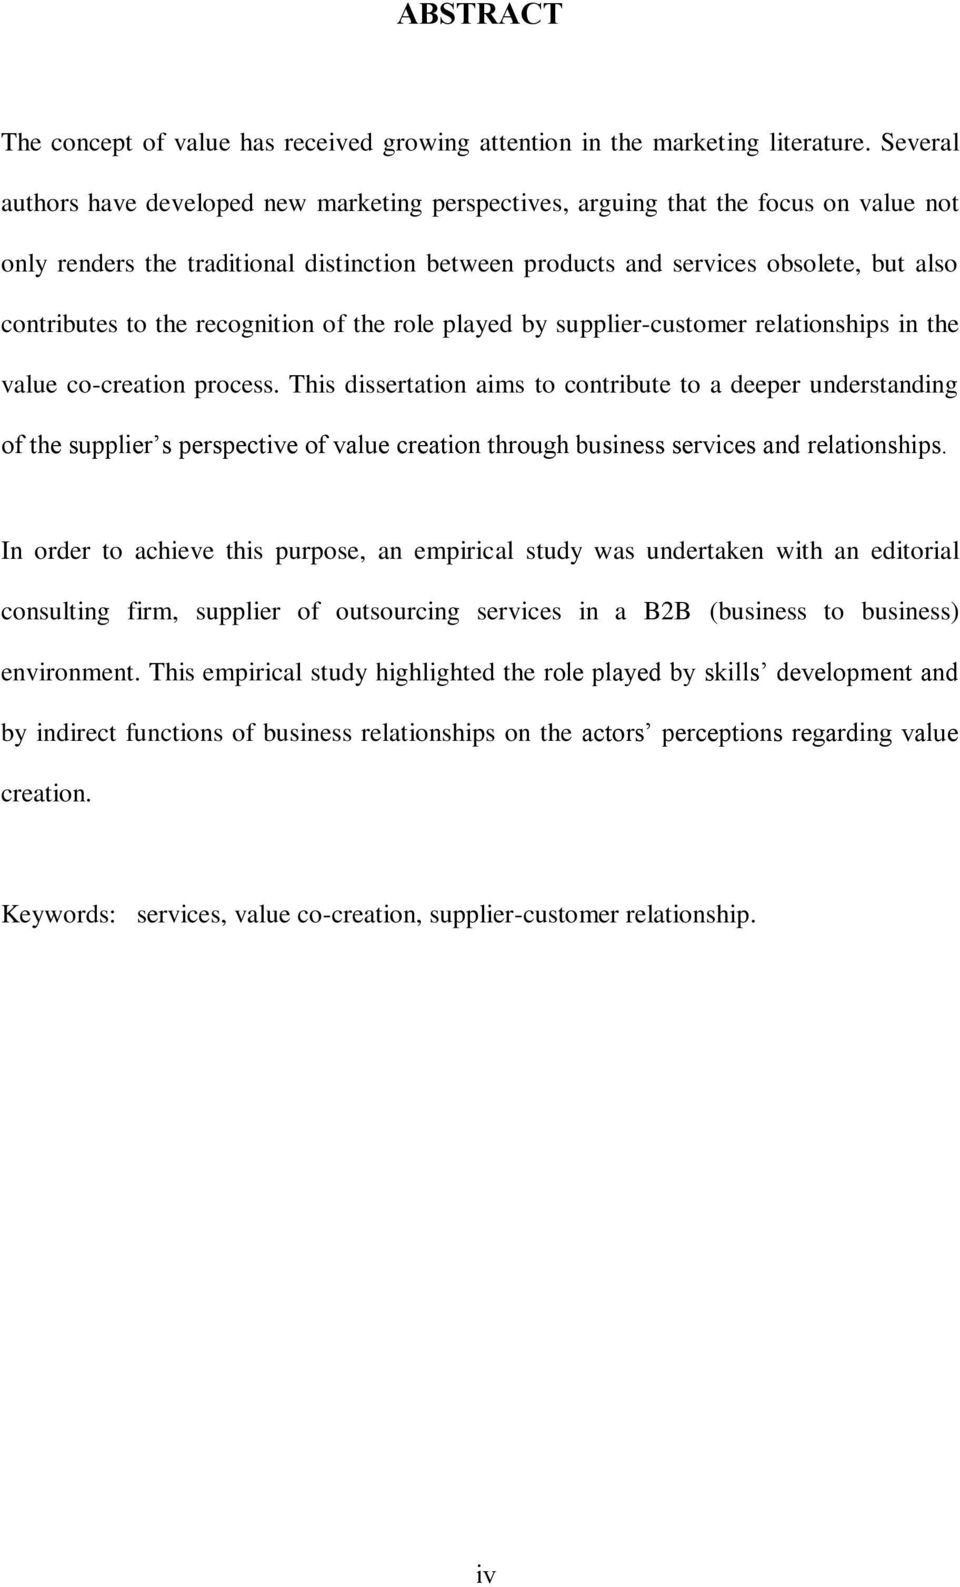 the recognition of the role played by supplier-customer relationships in the value co-creation process.